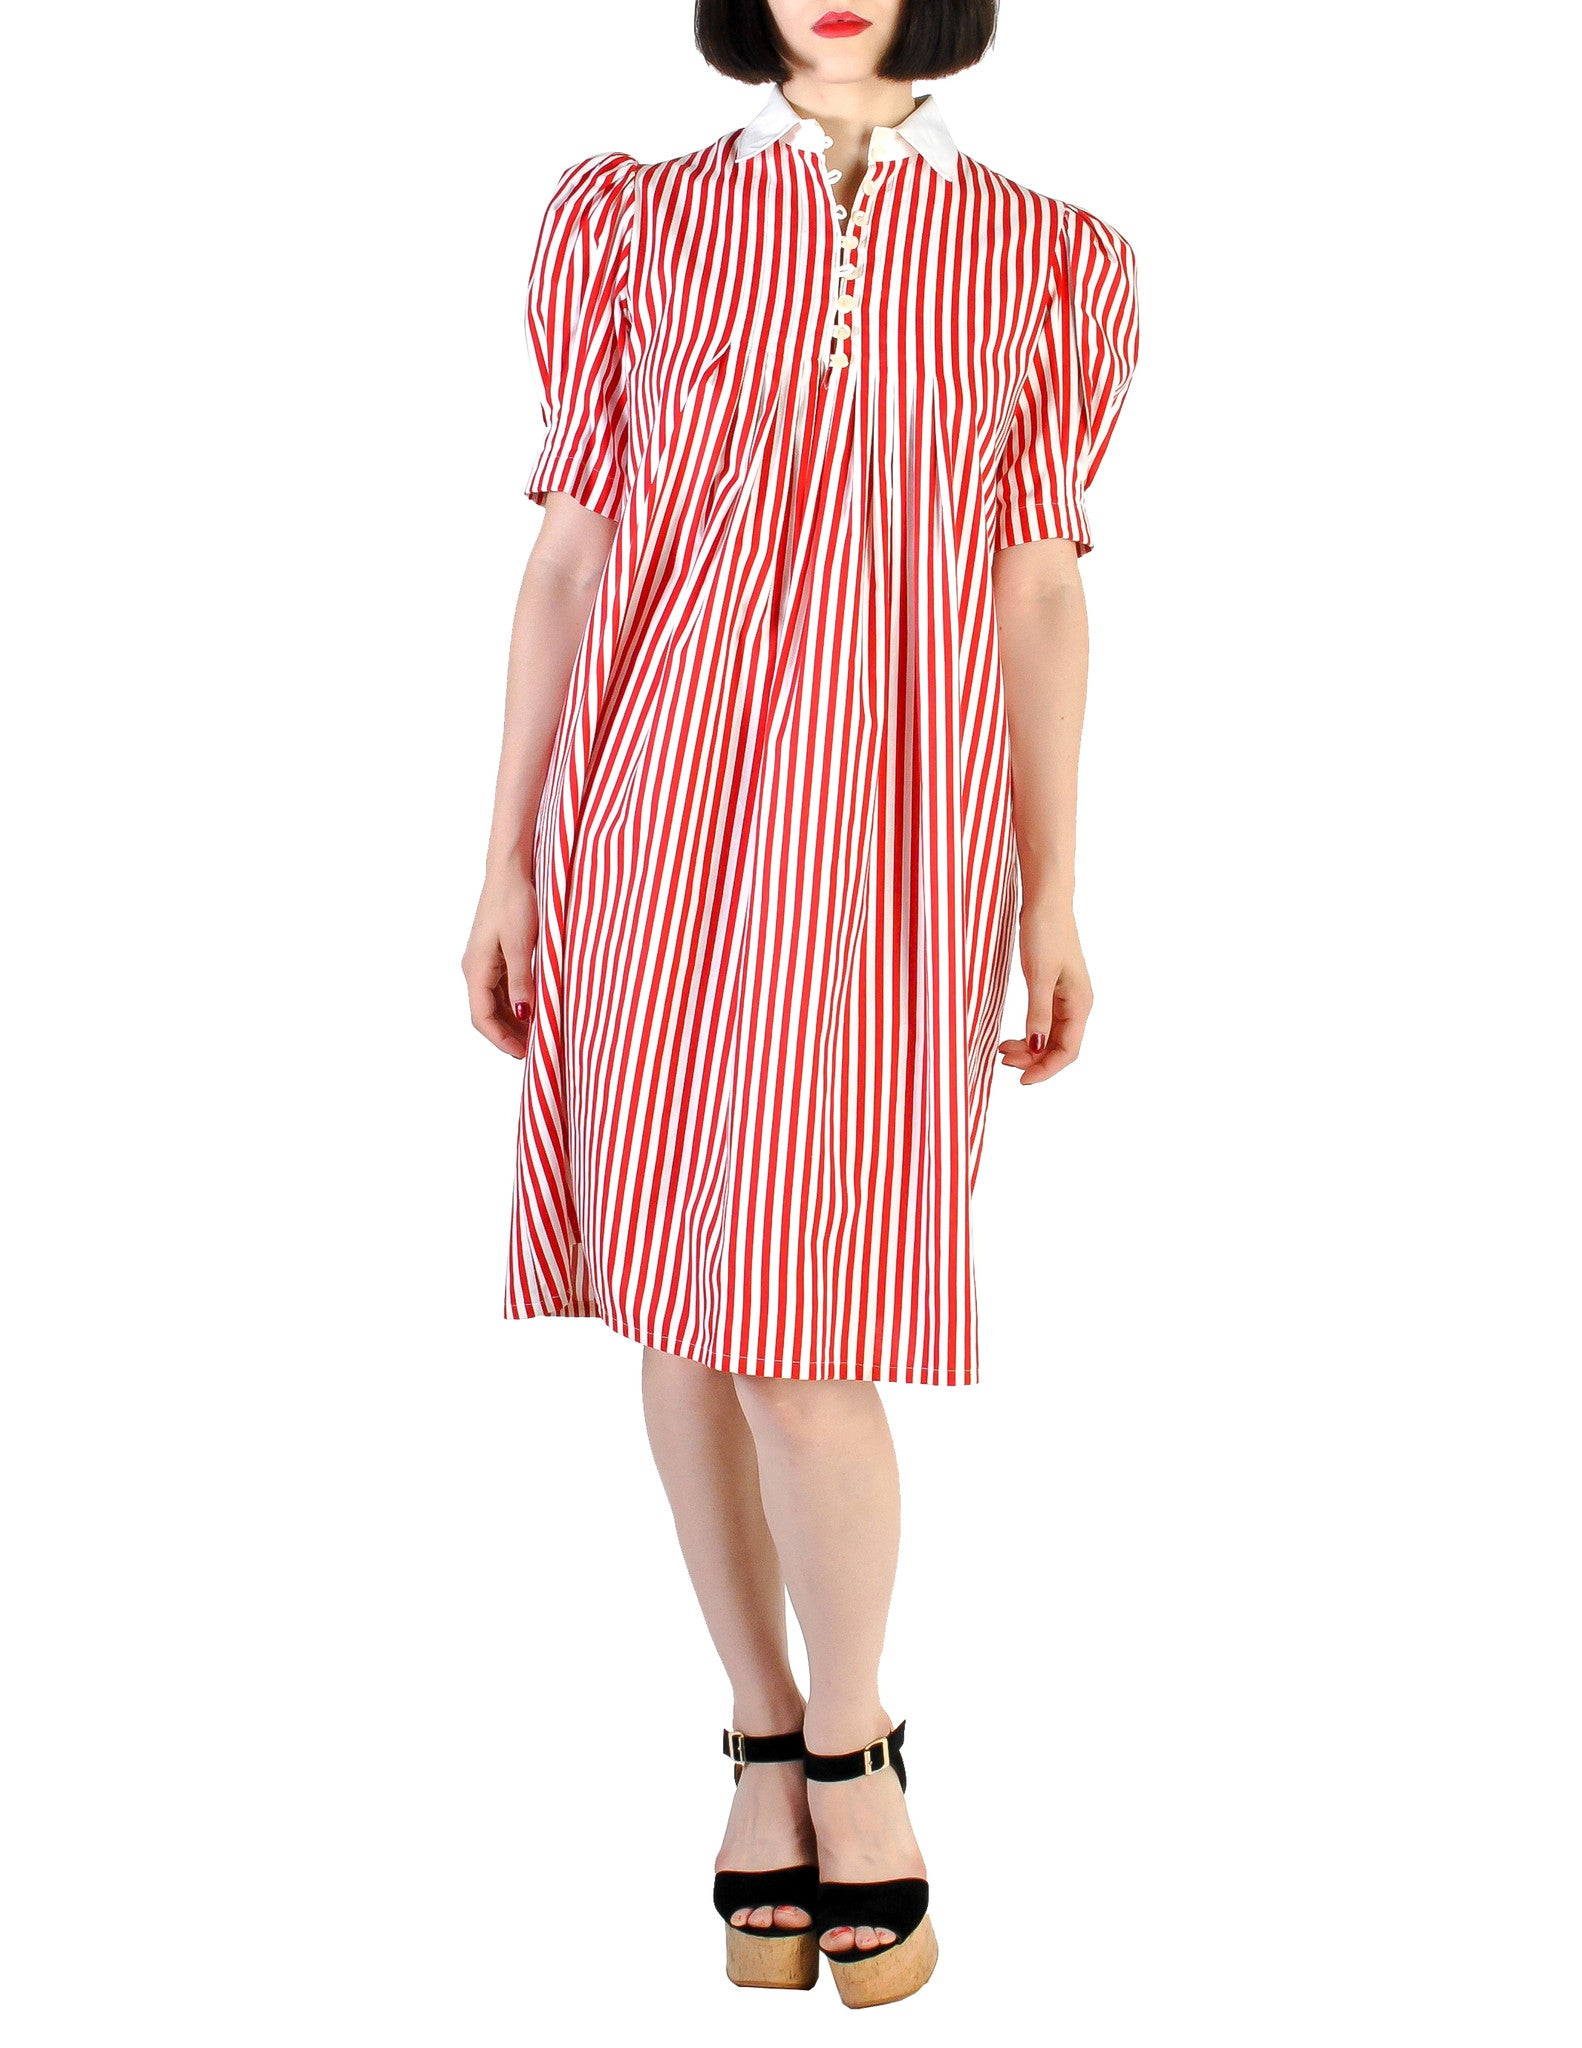 Giorgio Sant'Angelo Vintage Red & White Striped Dress - Amarcord Vintage Fashion  - 1